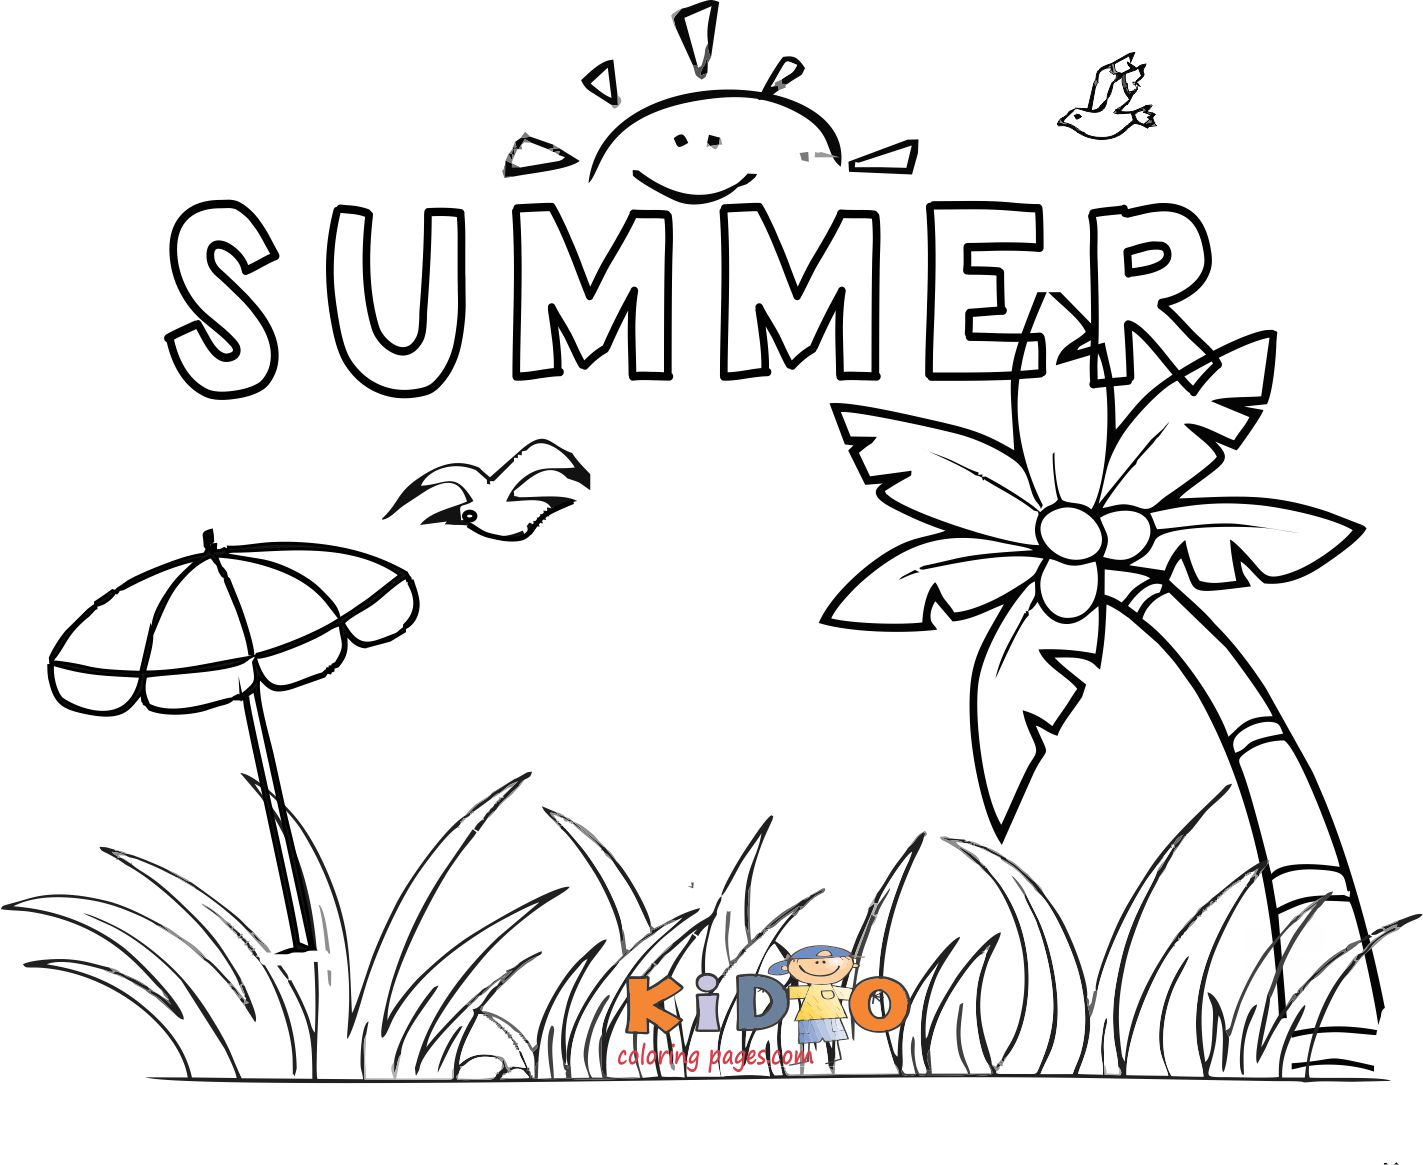 Summer holidays coloring pages printable - Kids Coloring Pages